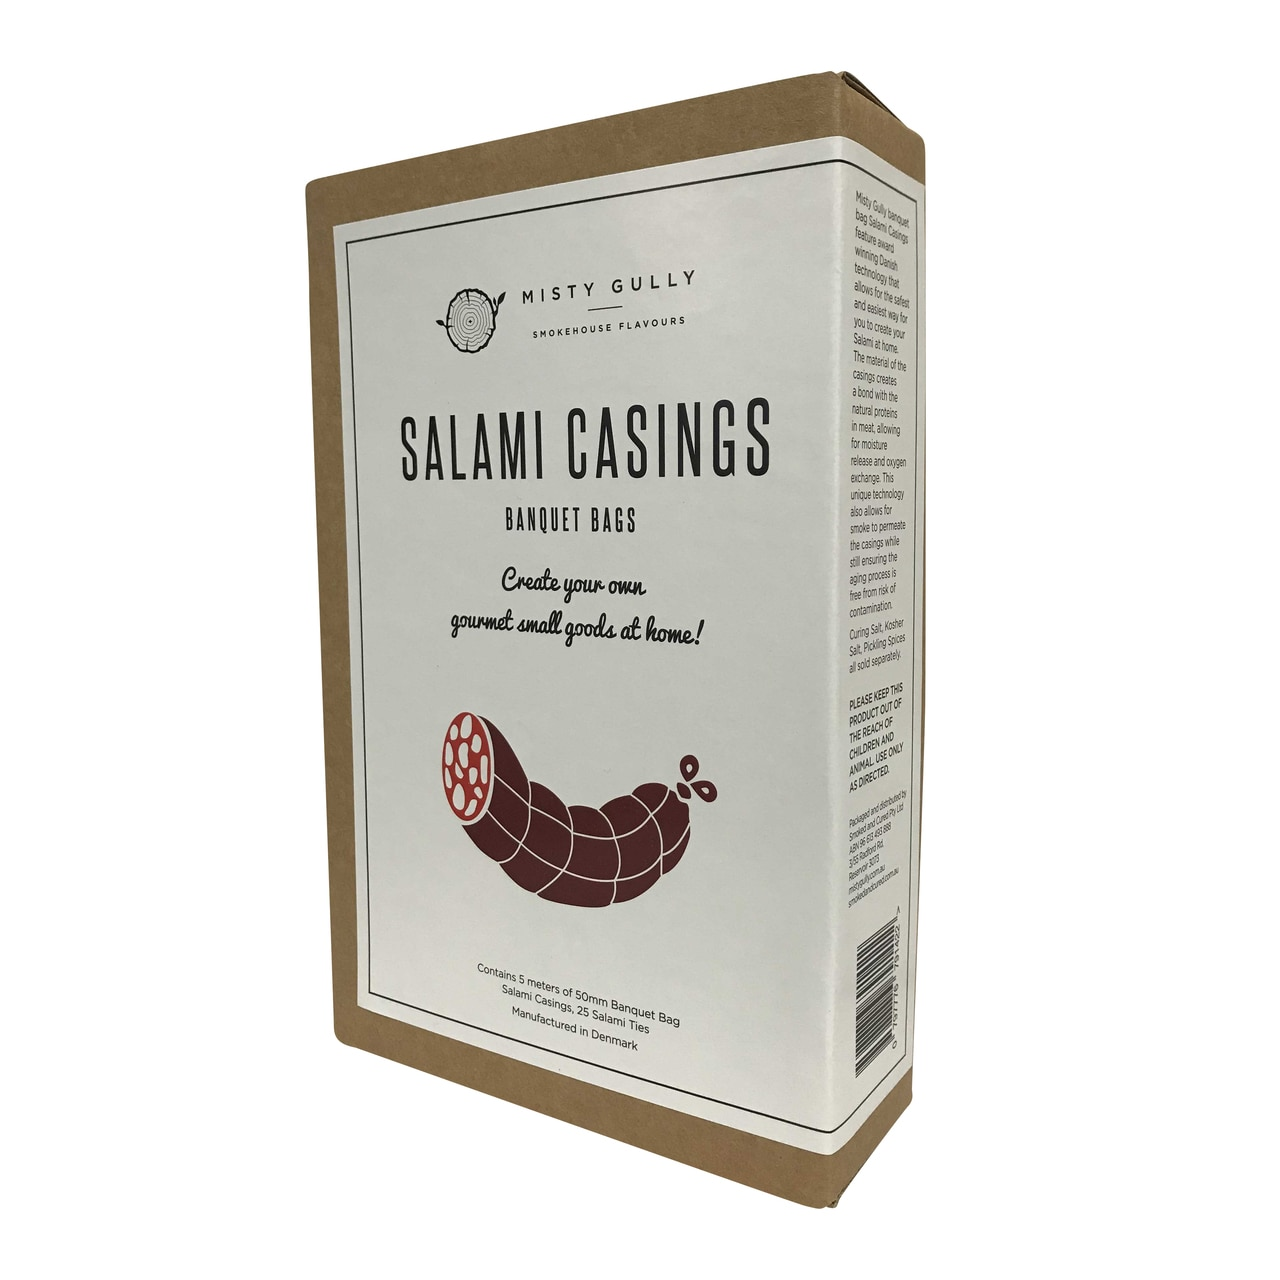 Misty Gully Banquet Bags Salami Casings - 75mm (5m length)